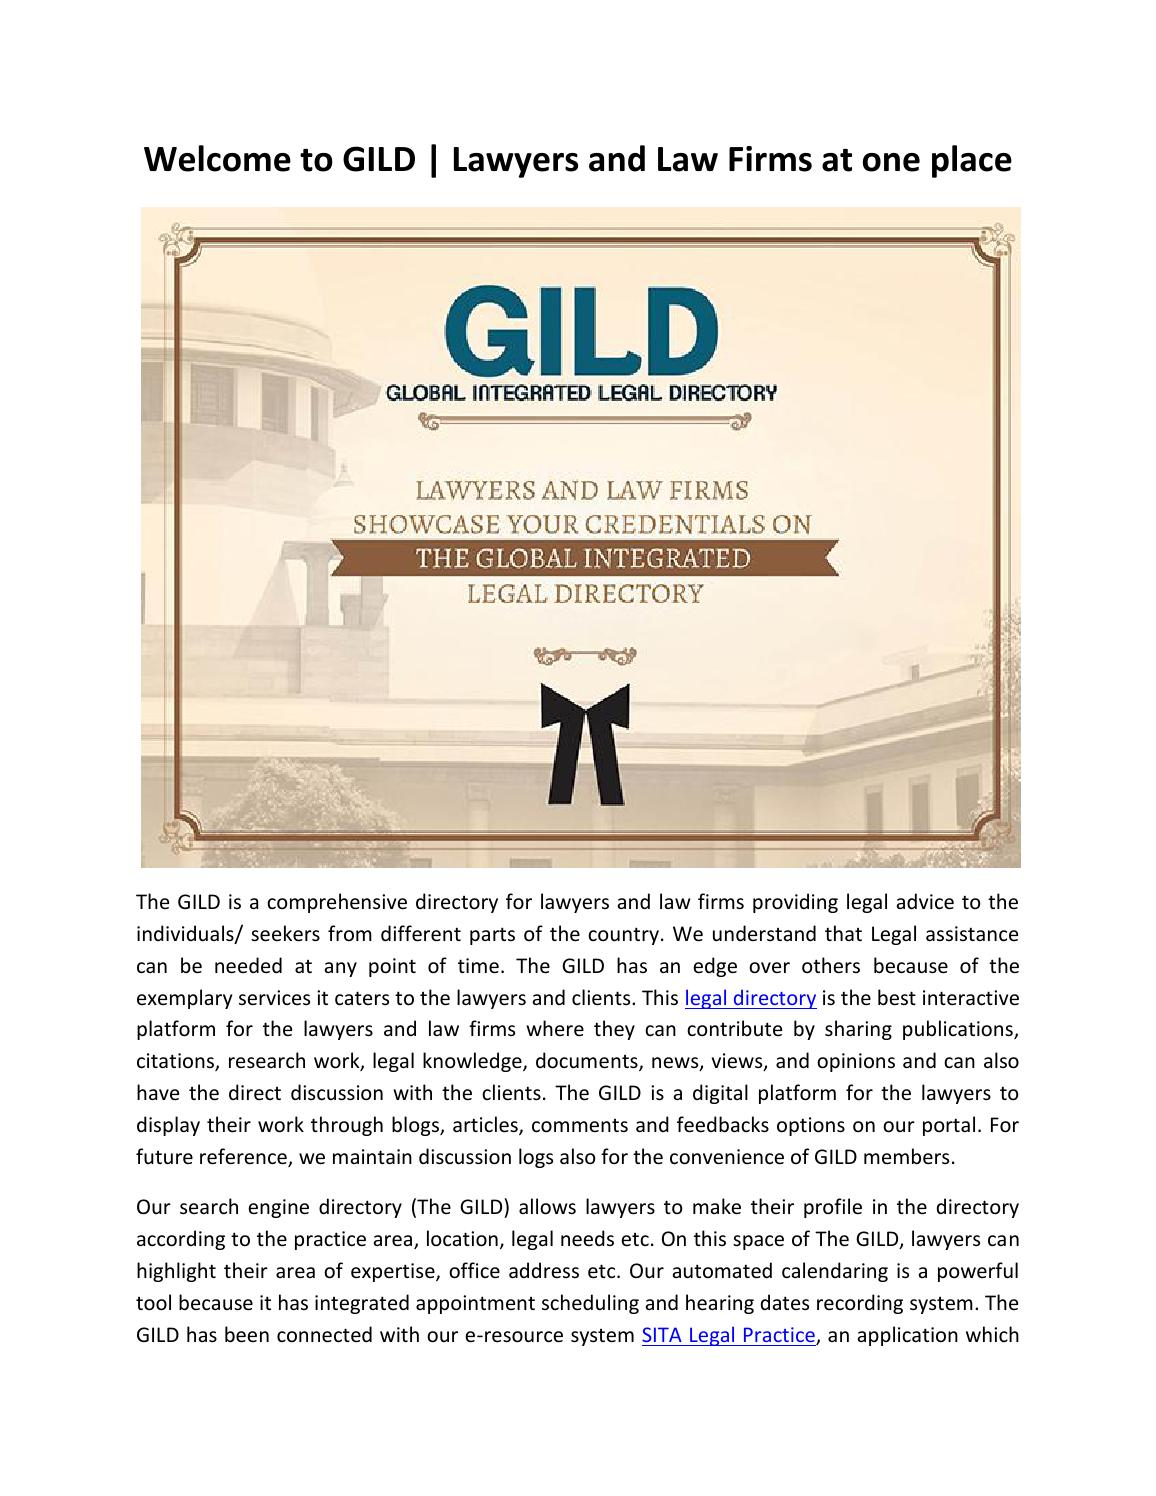 Welcome to GILD | Lawyers and Law Firms at one place by Mahi